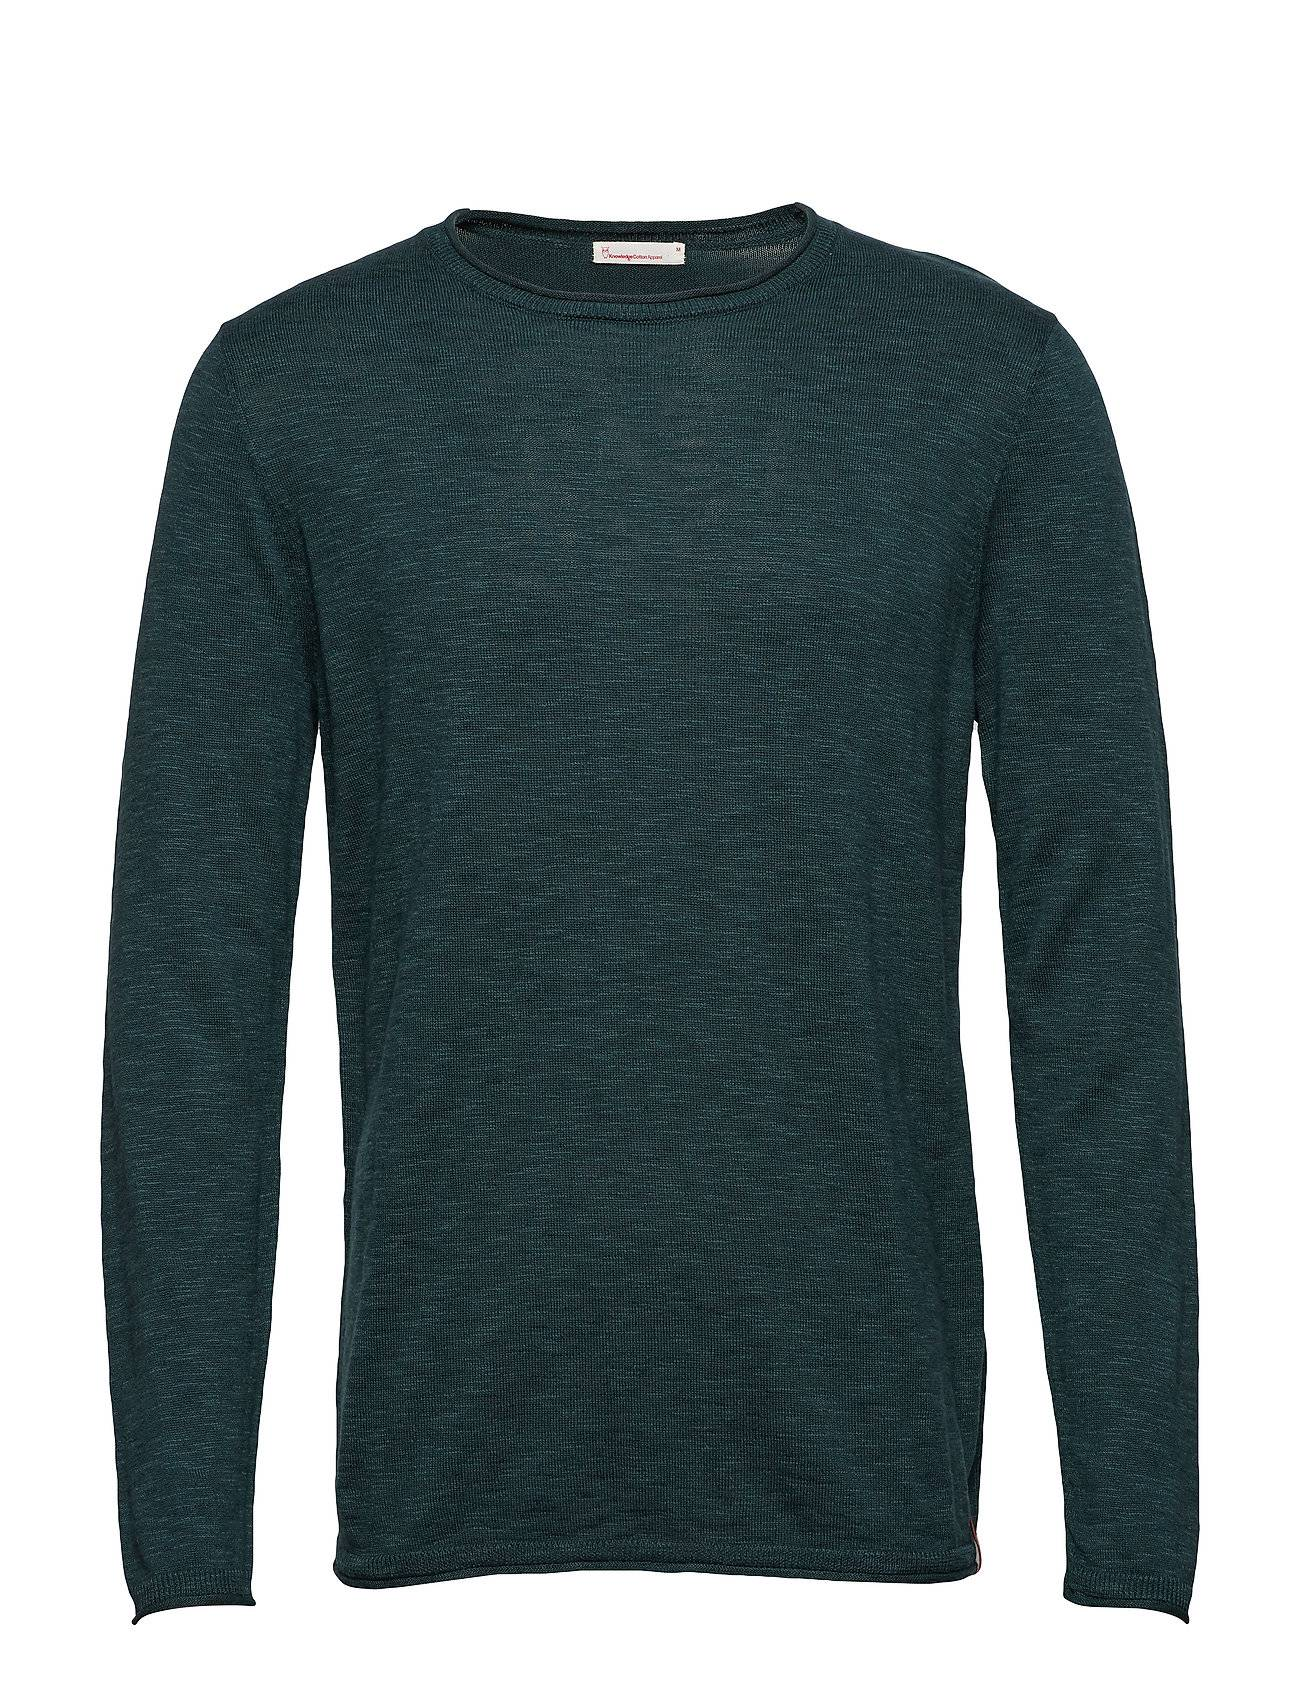 Knowledge Cotton Apparel Single Knit With Rool Edge/Vegan